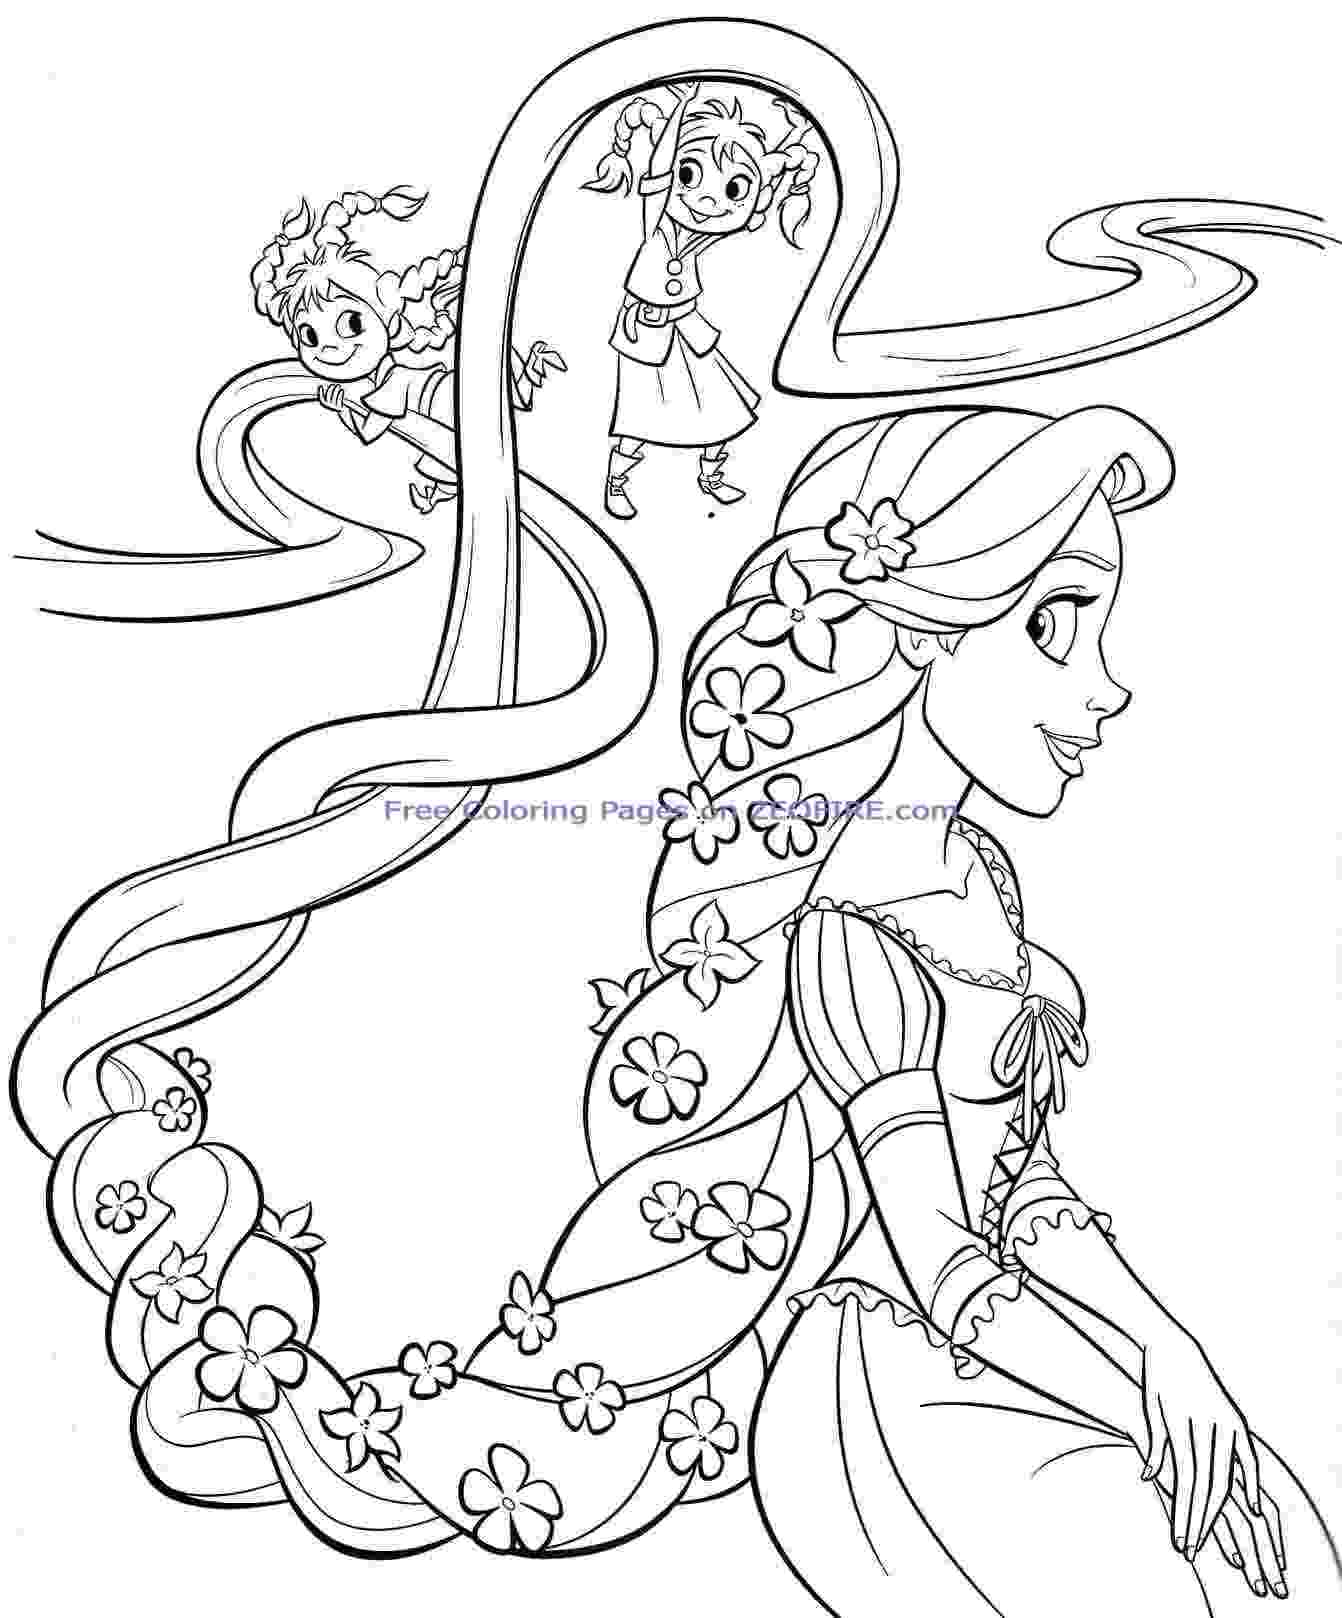 princess coloring pages online princesscoloringpages09 coloring page free disney online pages princess coloring